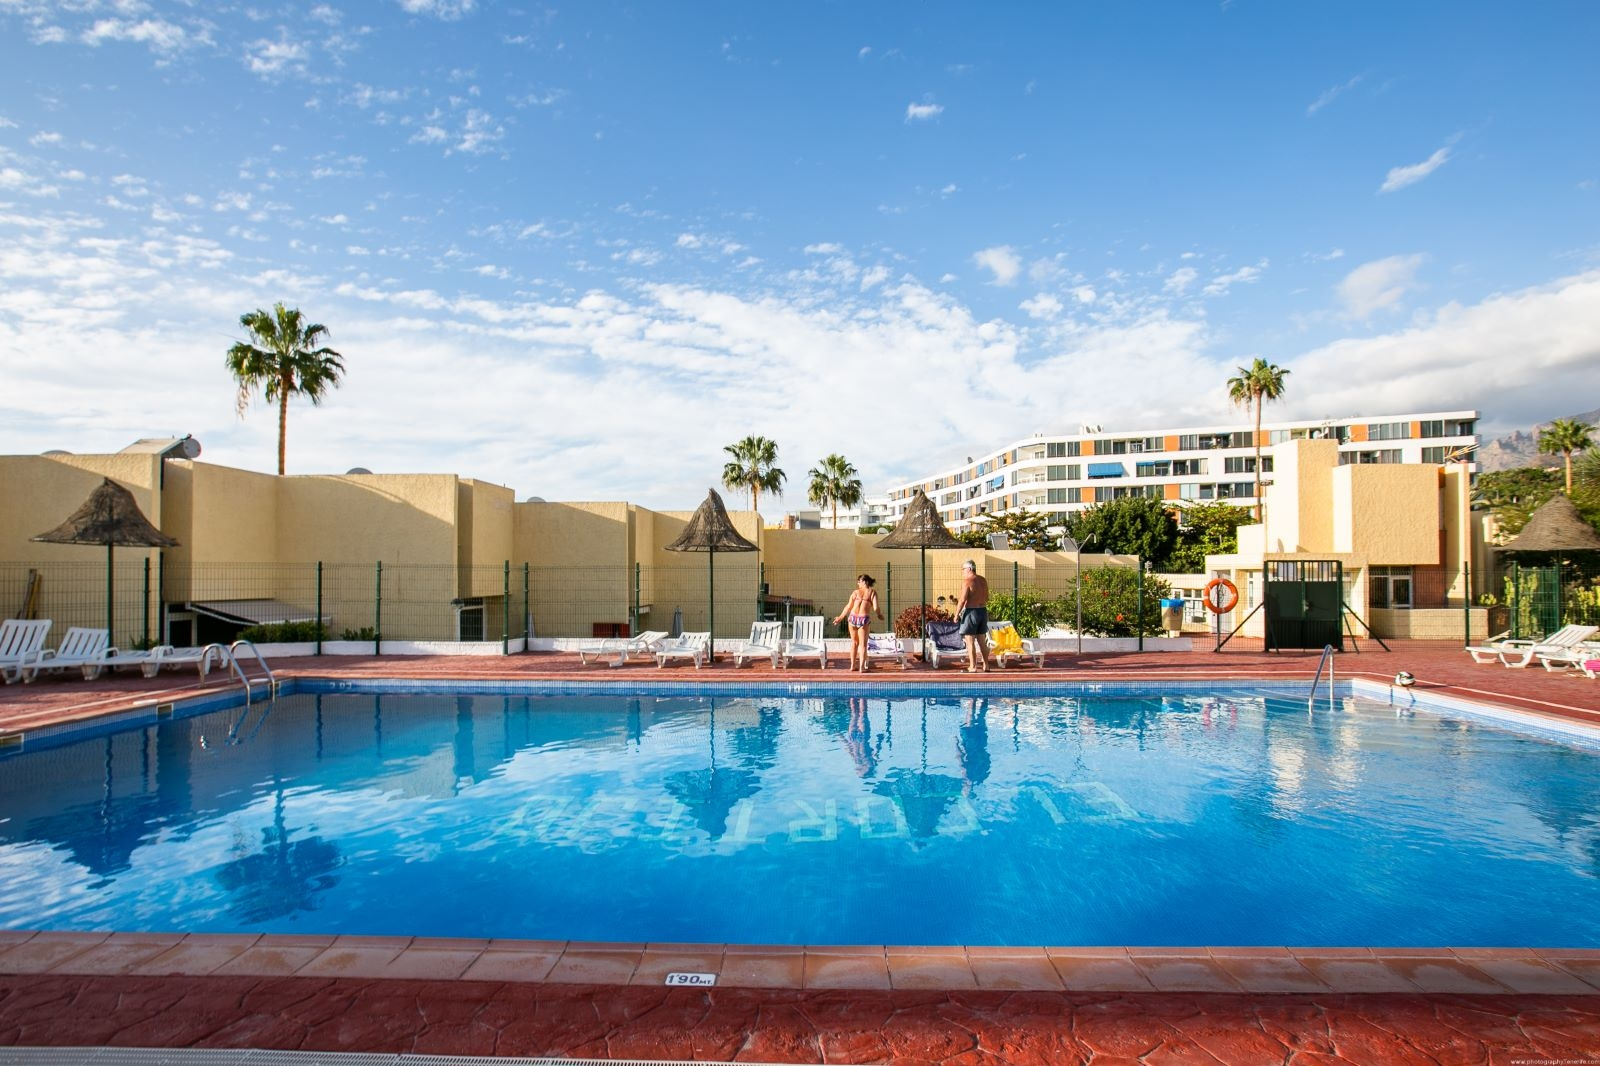 Properties for Sale in Tenerife, Canary Islands, Spain | SylkWayStar Real Estate. 1 bedroom apartment El Cortijo, Las Americas. Image-22485